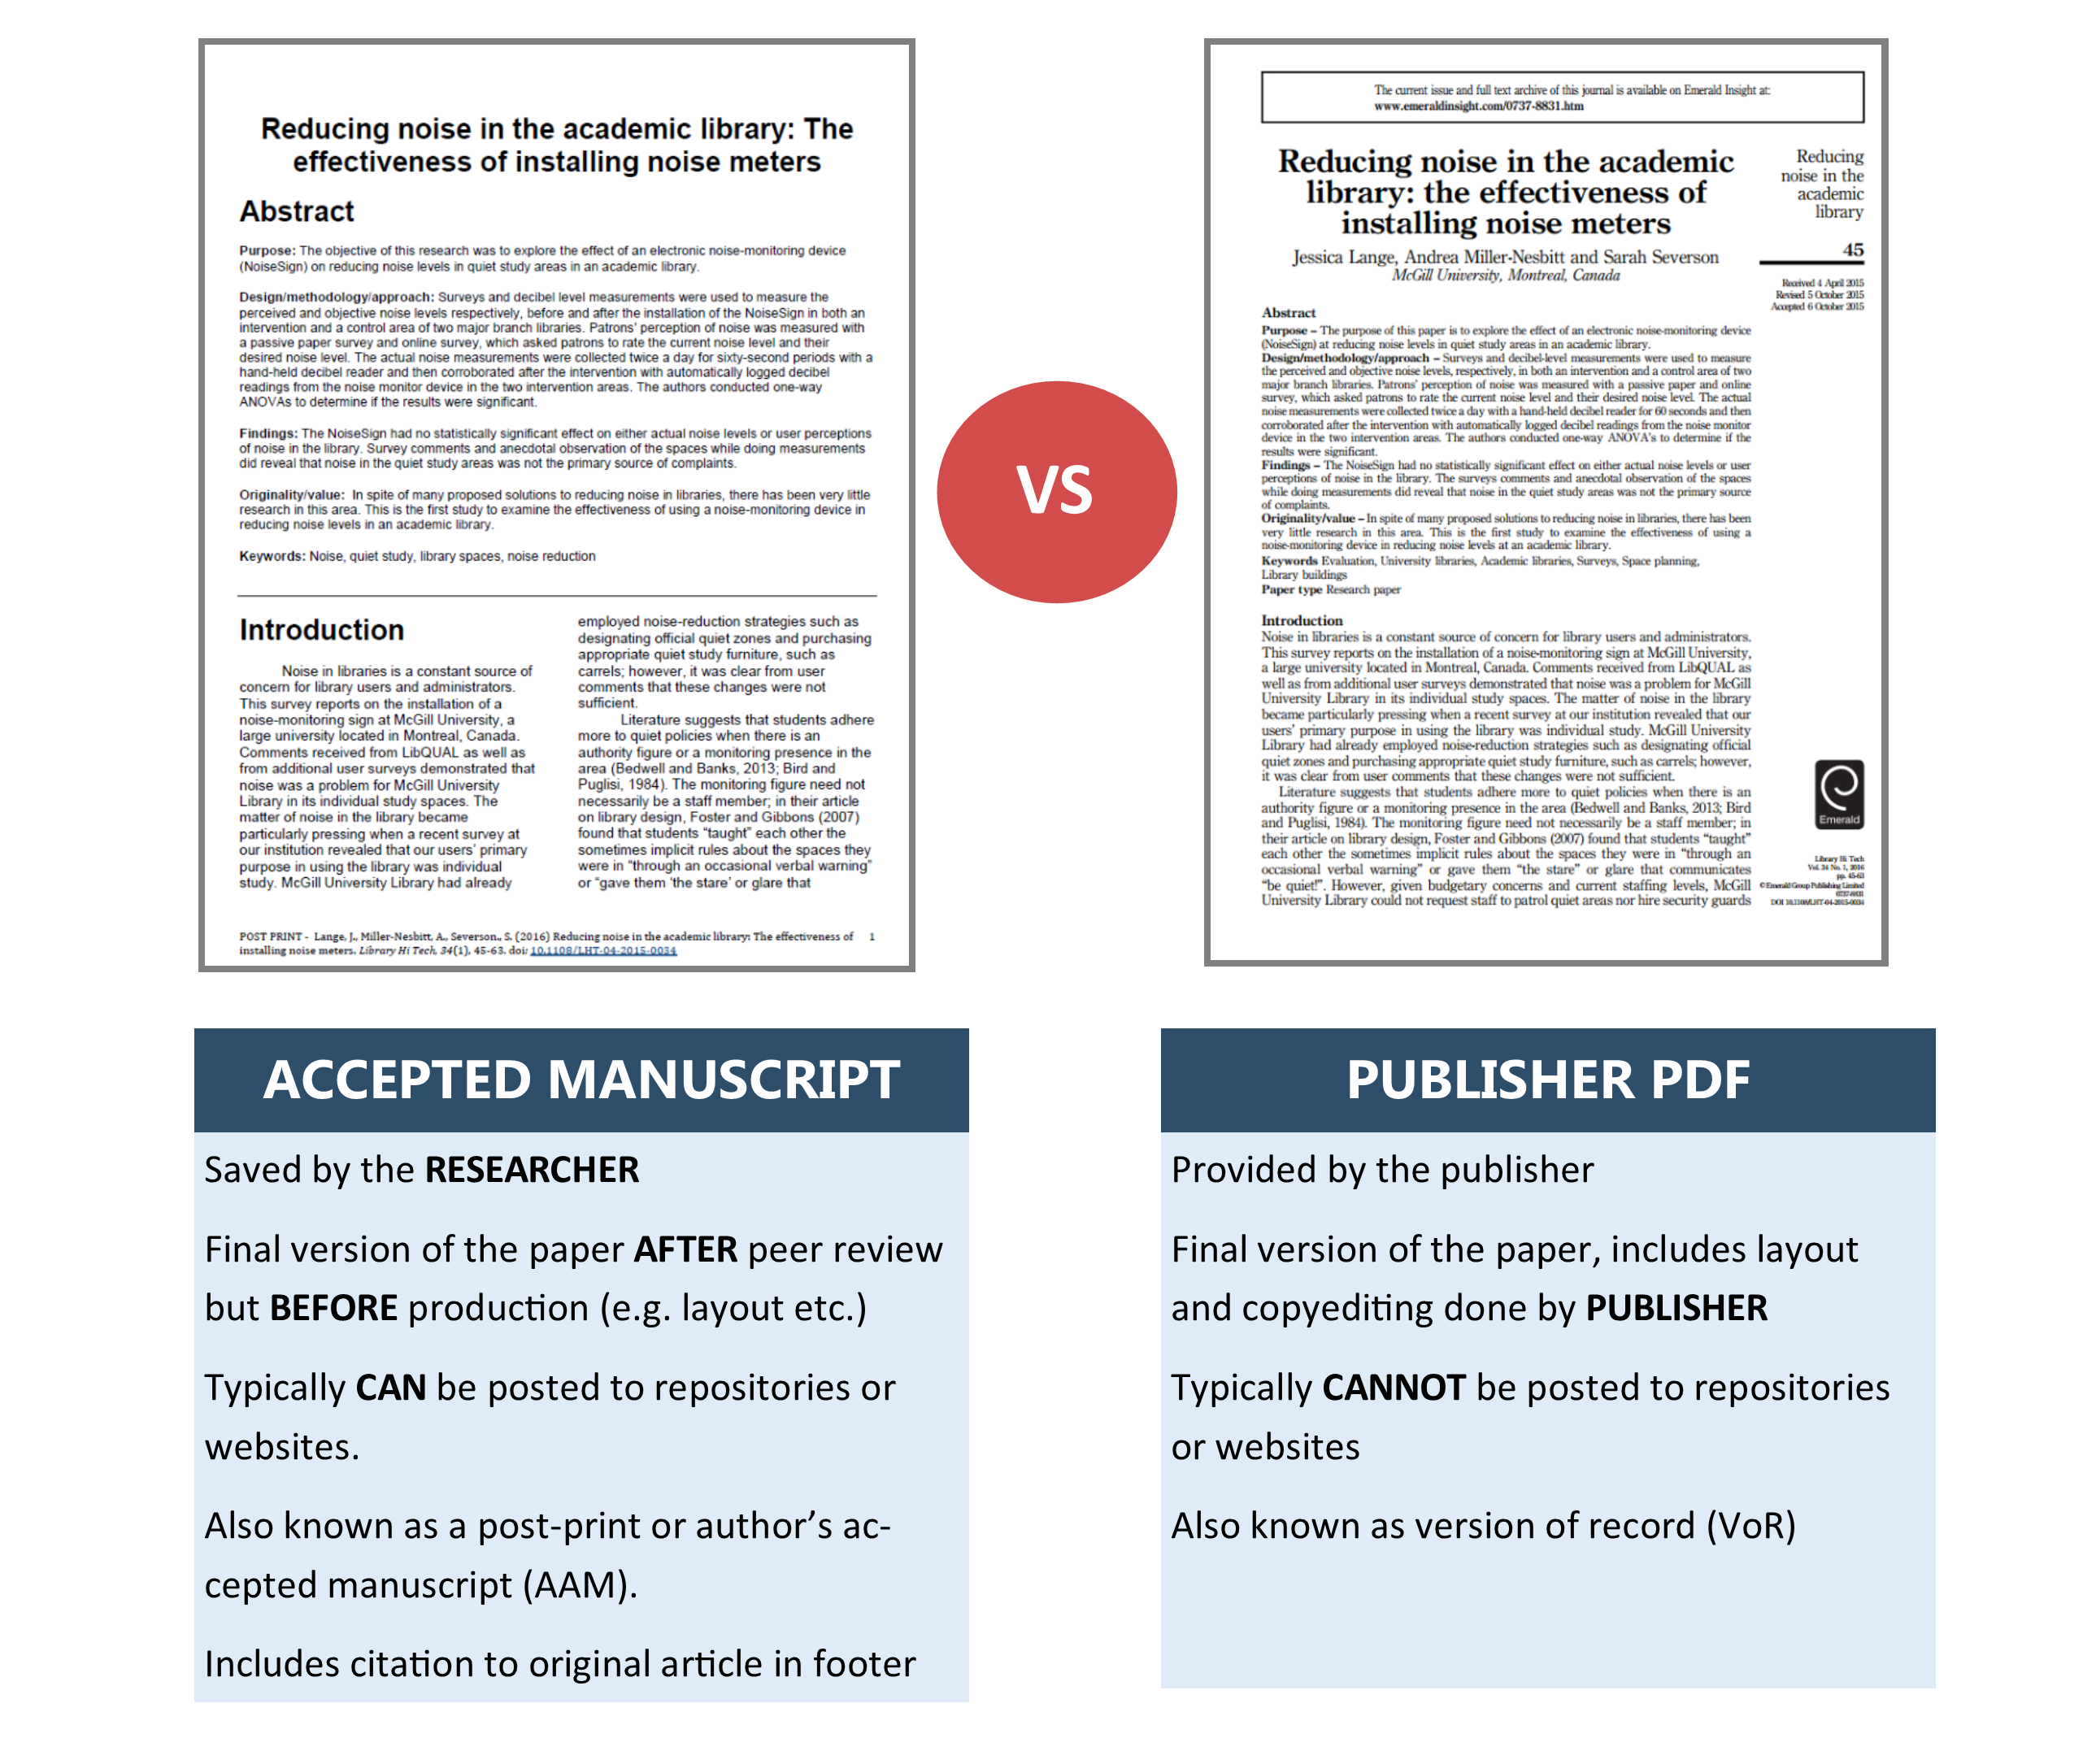 Accepted manuscripts are: saved by the researcher, the final version of the paper BEFORE production (e.g. layout etc.), Typically CAN be posted to repositories or websites. Also known as author's accepted manuscript (AAM) or  accepted manuscript Includes citation to original article in footer. Publisher's versions are: Provided by the PUBLISHER , final version of the paper, includes layout and copyediting, typically CANNOT be posted to repositories or websites, also known as version of record (VoR)